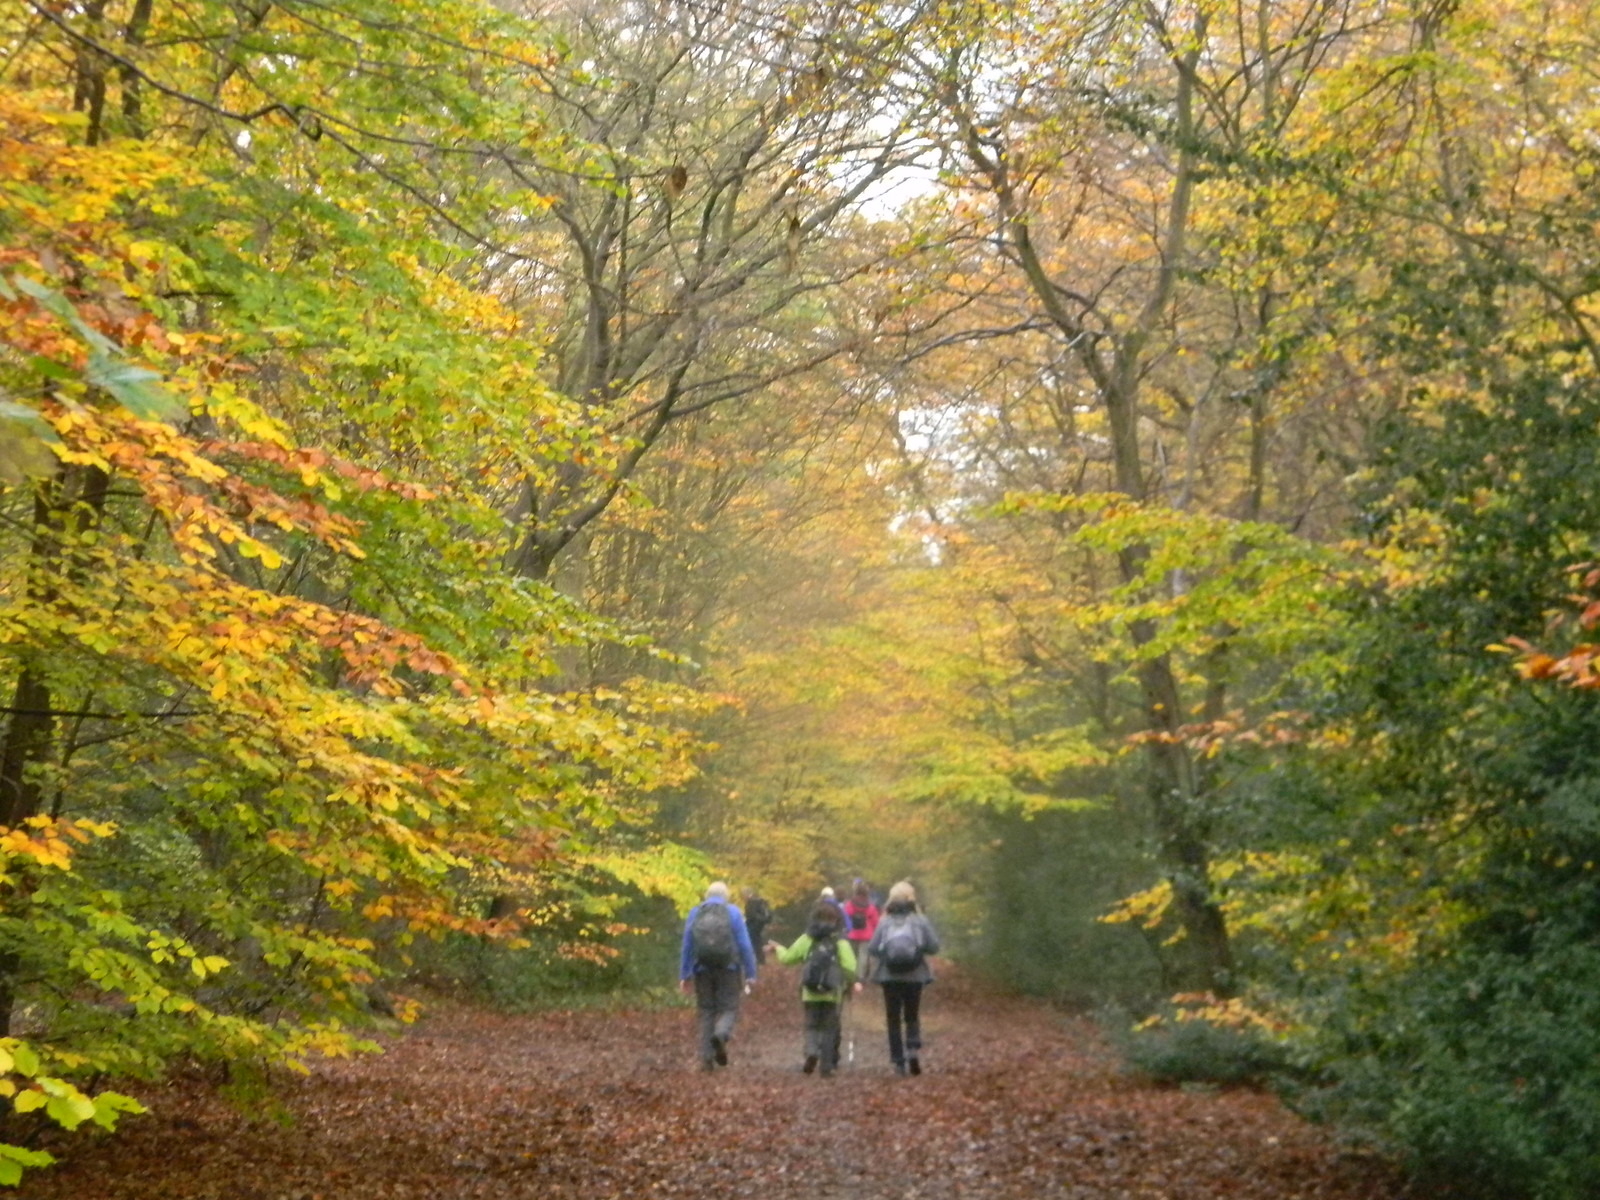 L'automne est arrive Epping Forest, Loughton to Essex